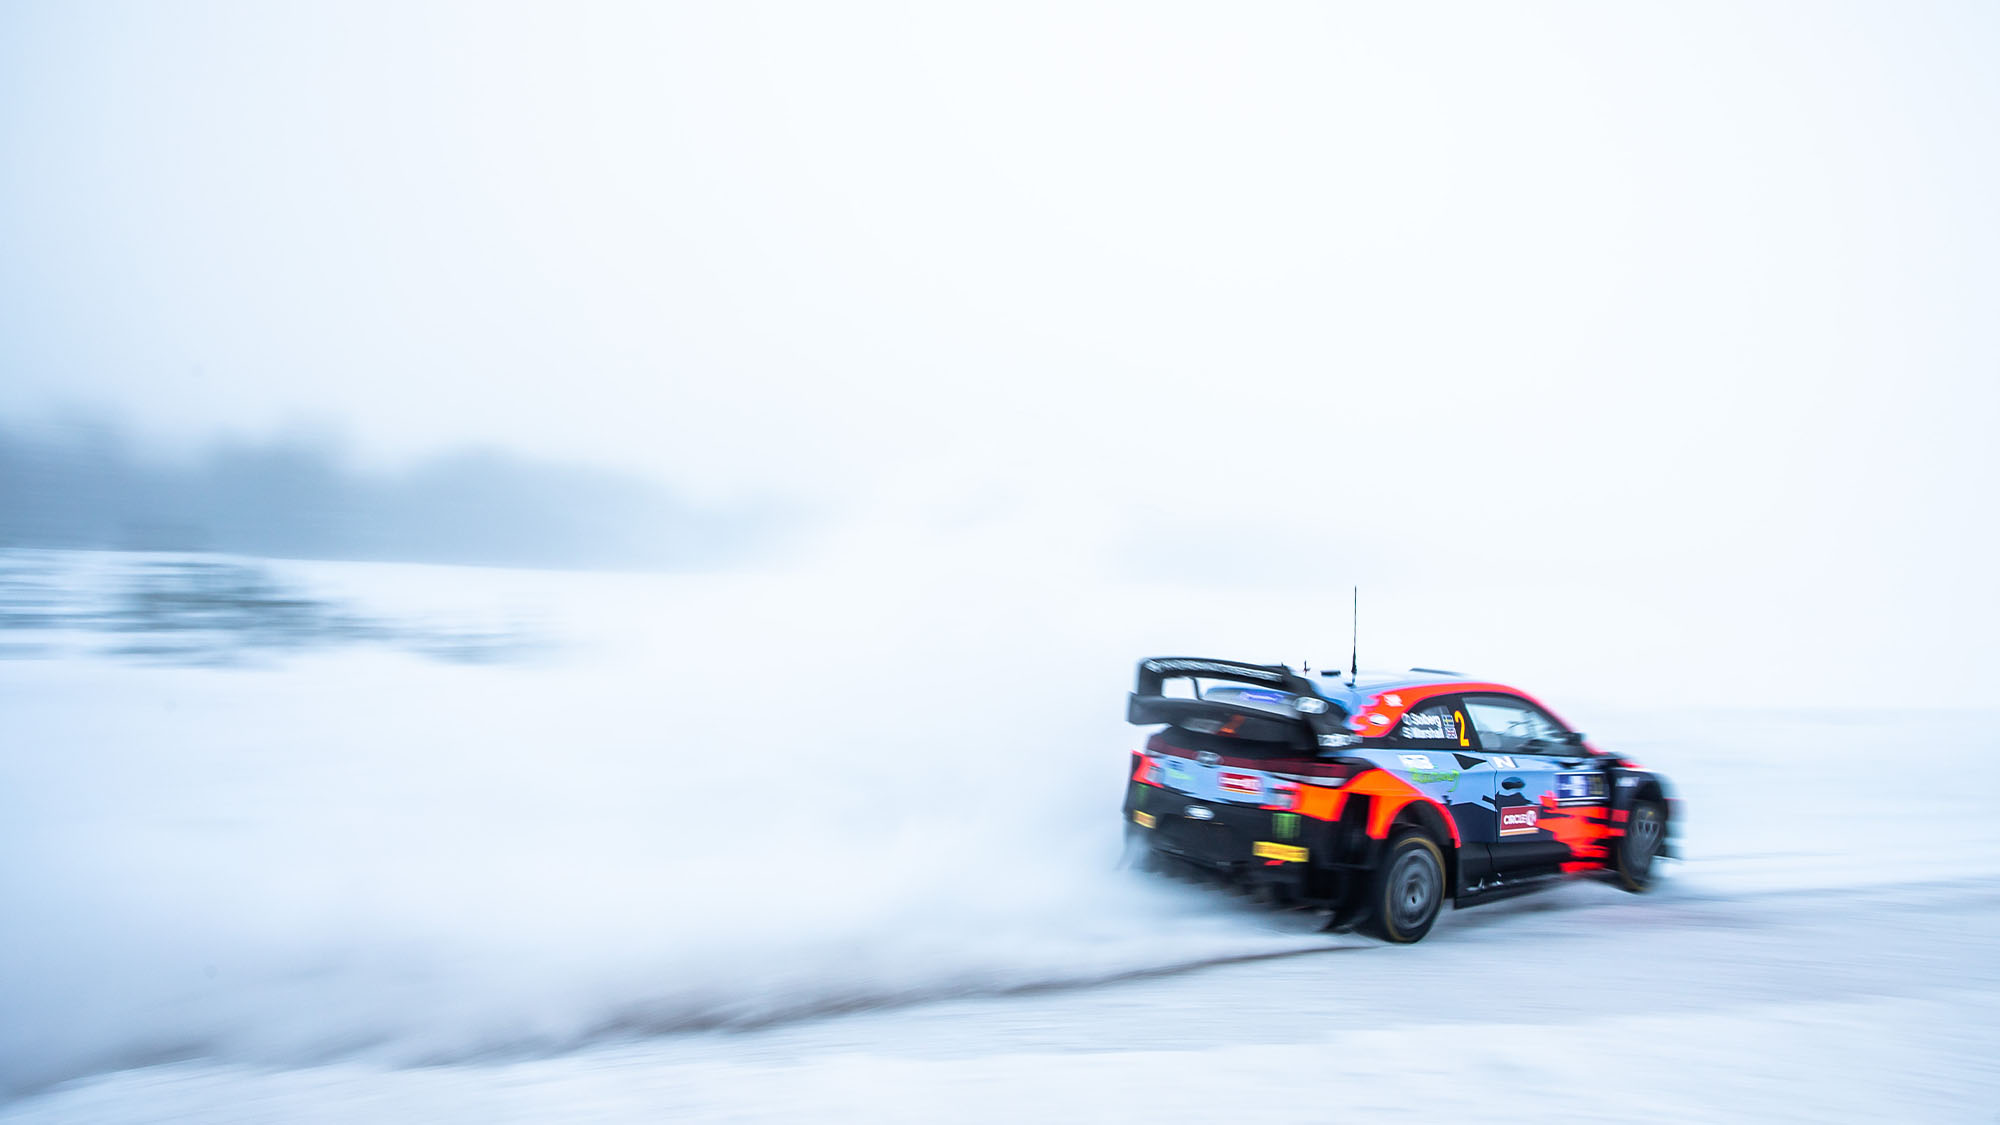 02 Solberg Oliver (nor), Johnston Aaron (irl), Hyundai 2C Competition, Hyundai i20 Coupé WRC, action during the 2021 Arctic Rally Finland, 2nd round of the 2021 FIA WRC, FIA World Rally Car Championship, from February 26 to 28, 2021 in Rovaniemi, Lapland, Finland - Photo Nikos Katikis / DPPI